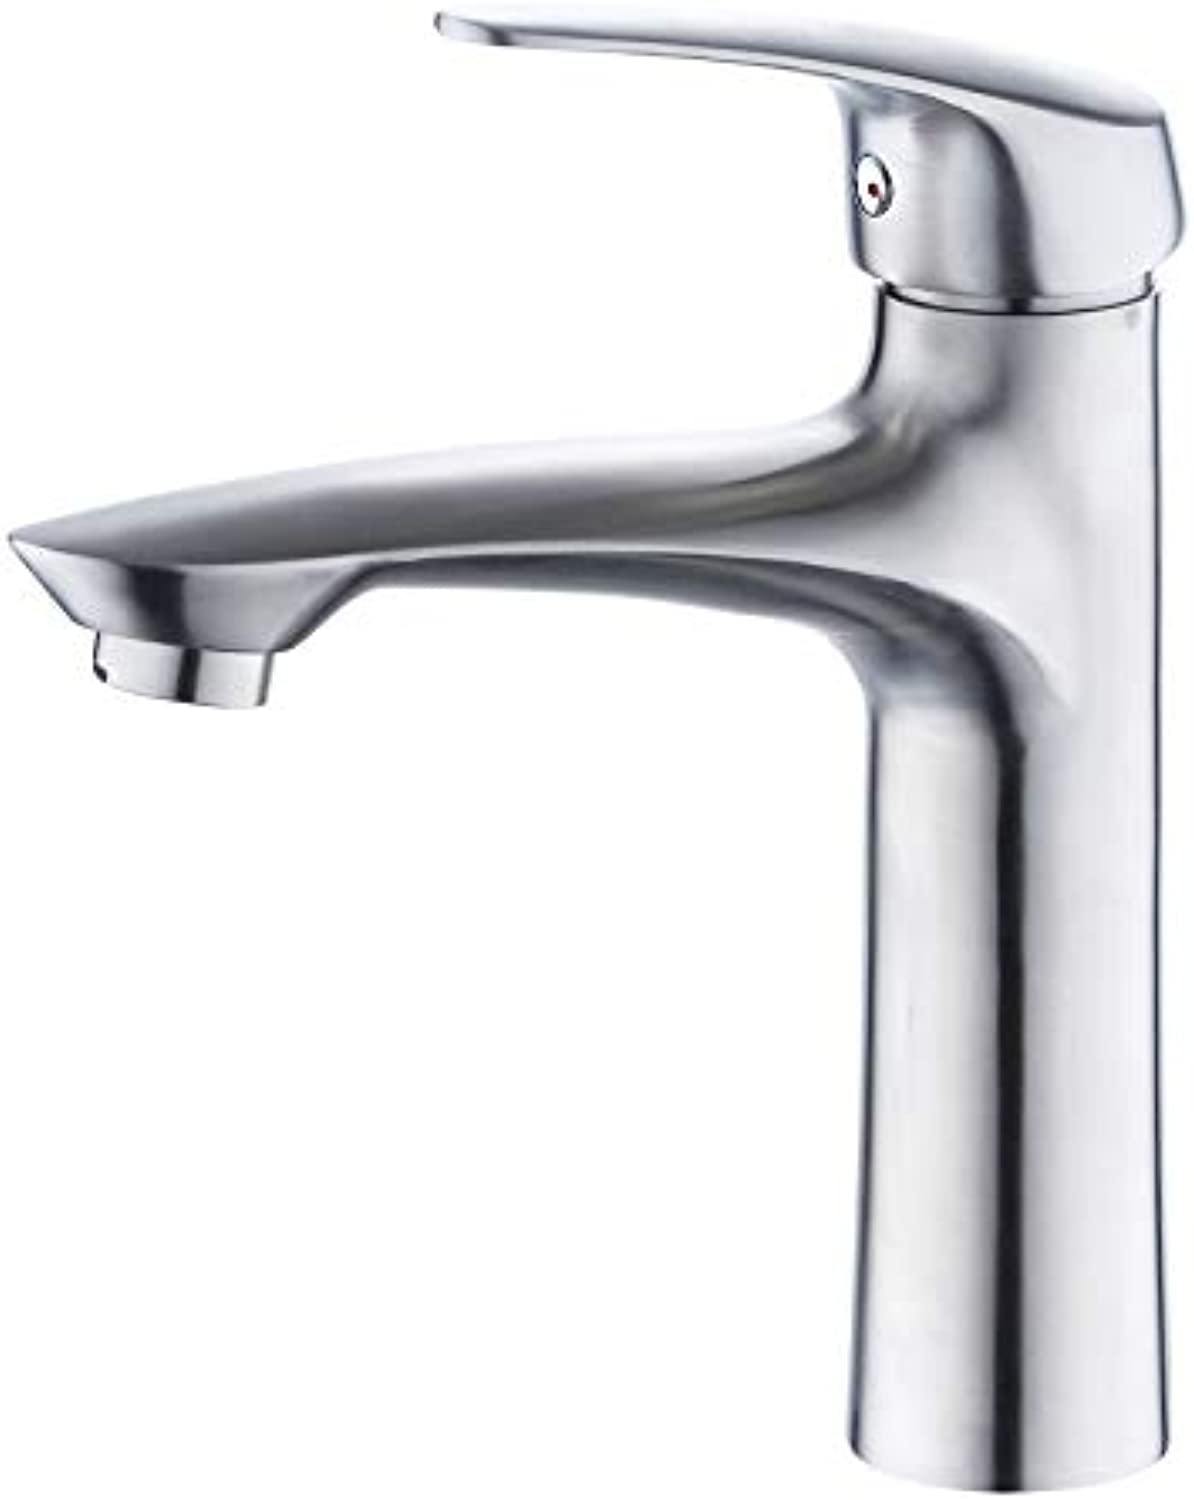 redOOY Bathroom Sink Taps Taps Faucet Basin Faucet304 Stainless Steel Basin Hot and Cold Mixing Valve